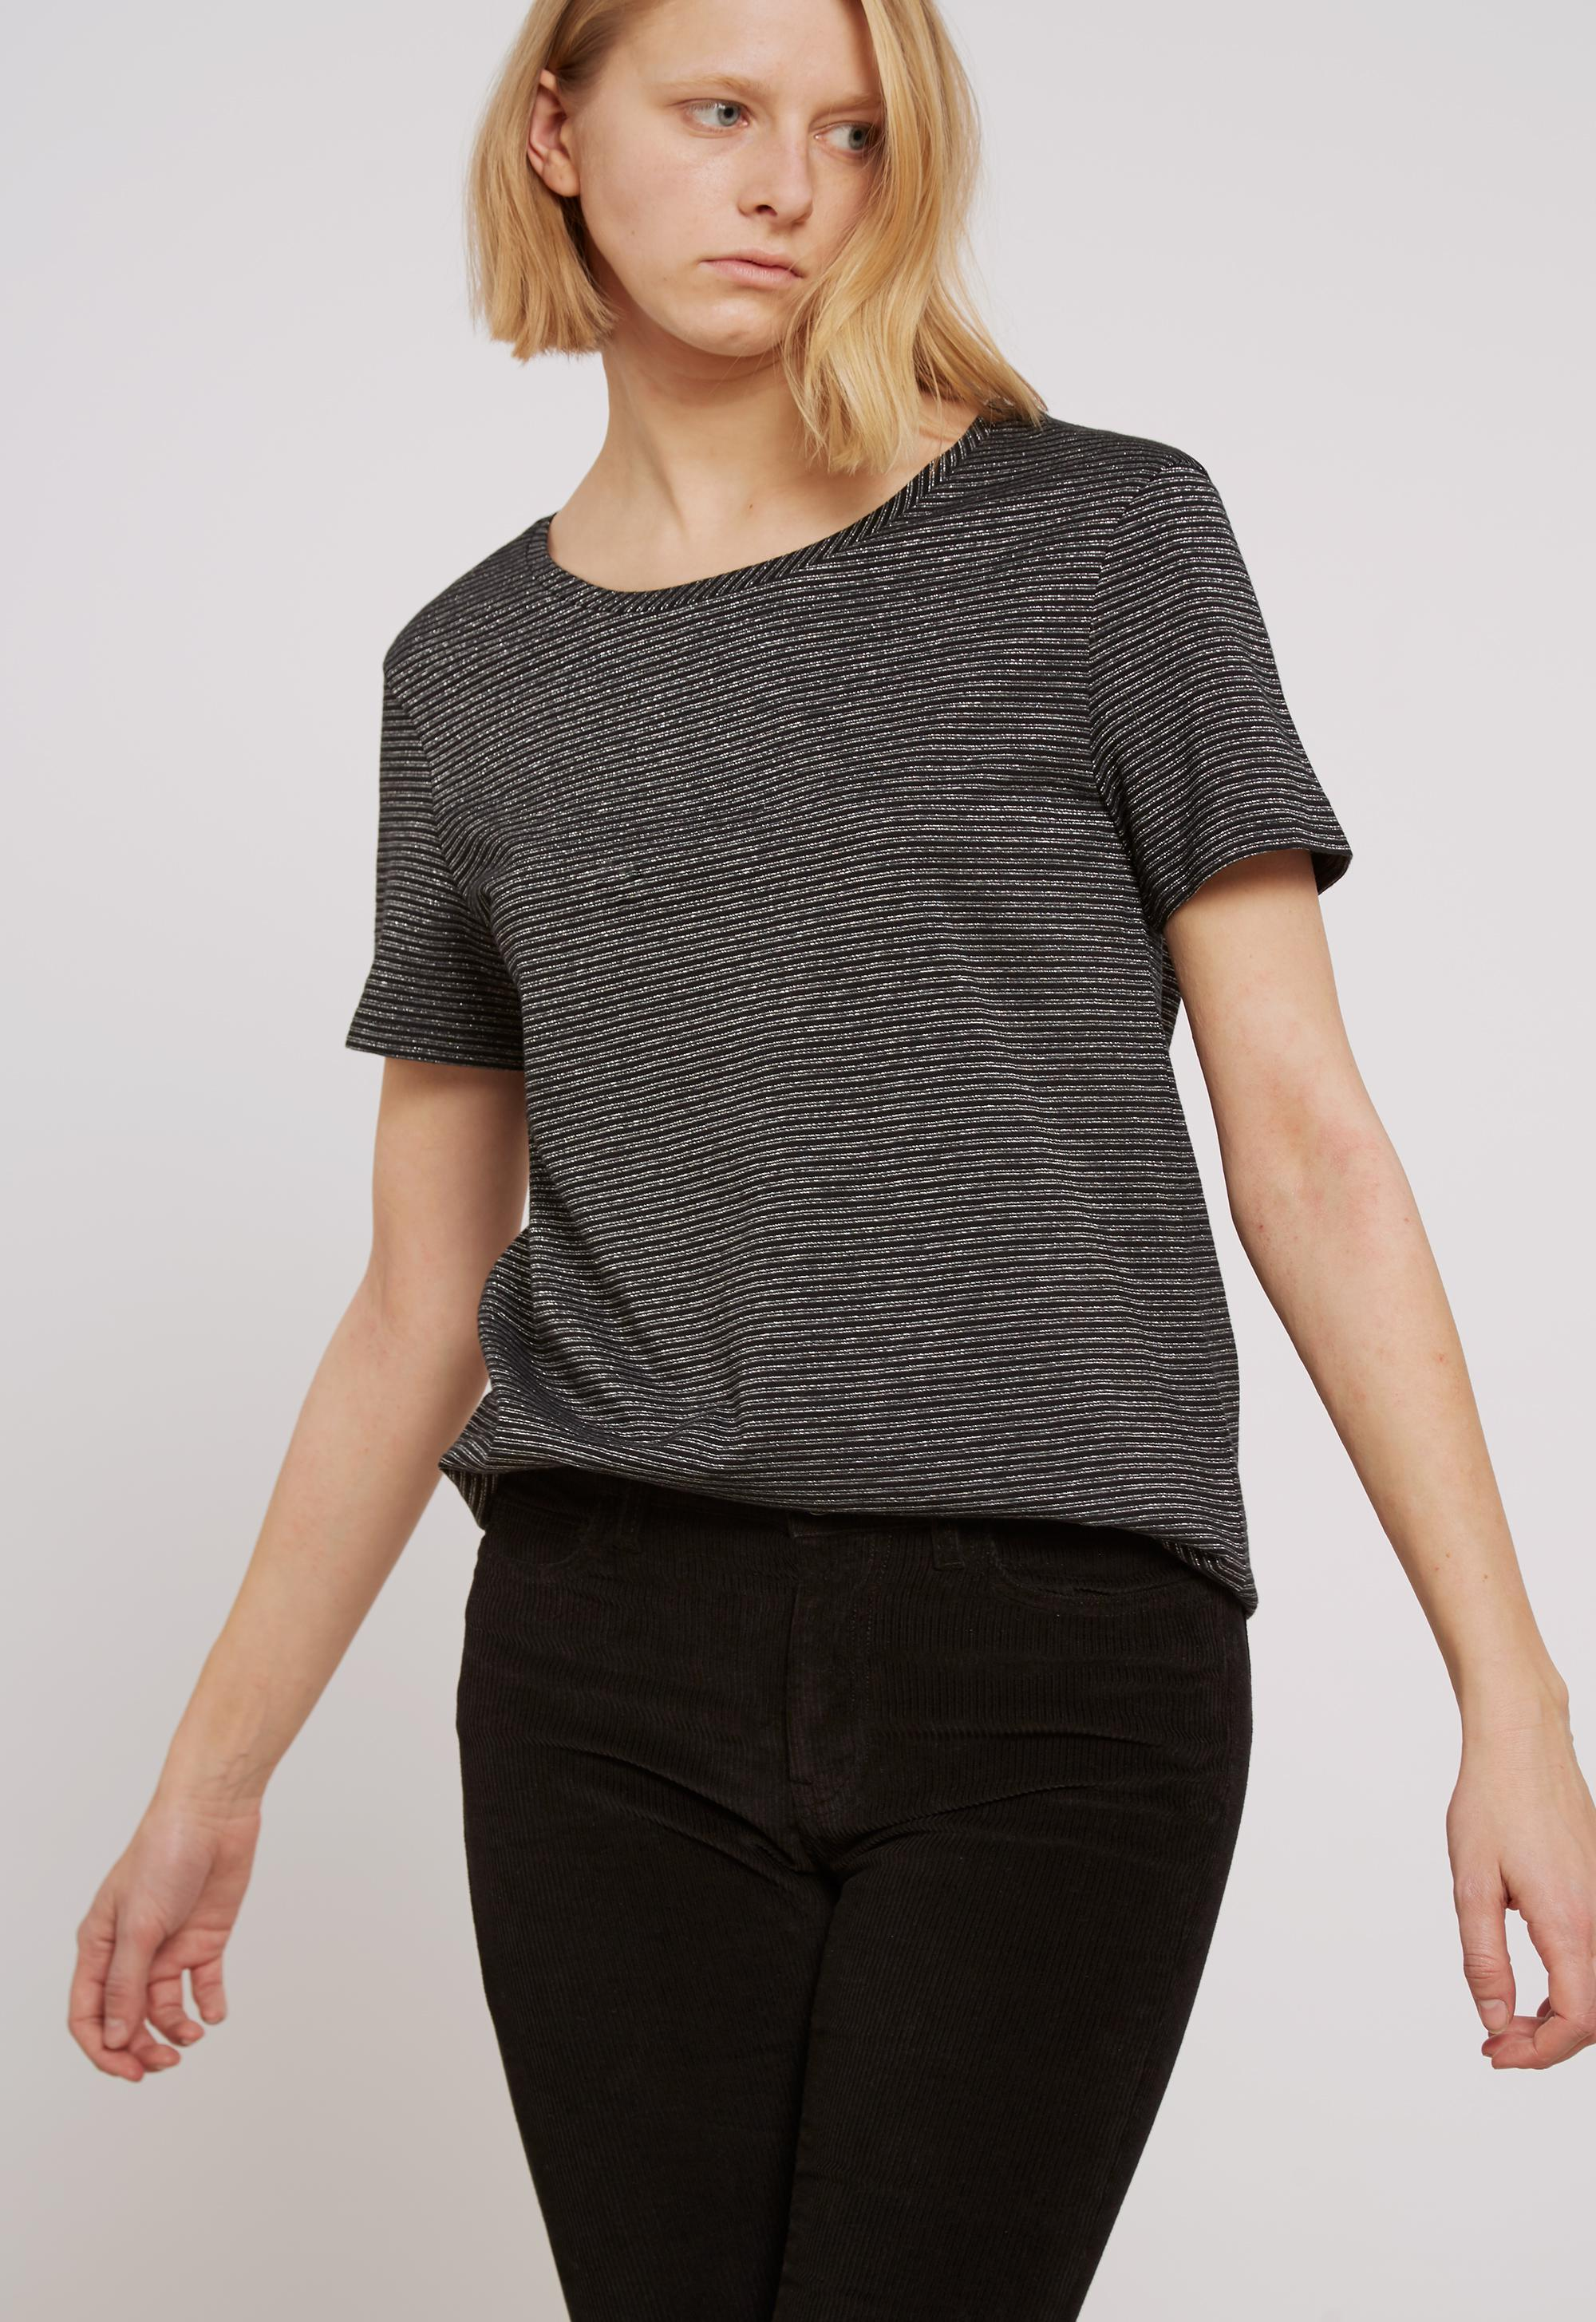 Lyst mih jeans nora tee in black for Silver jeans t shirts